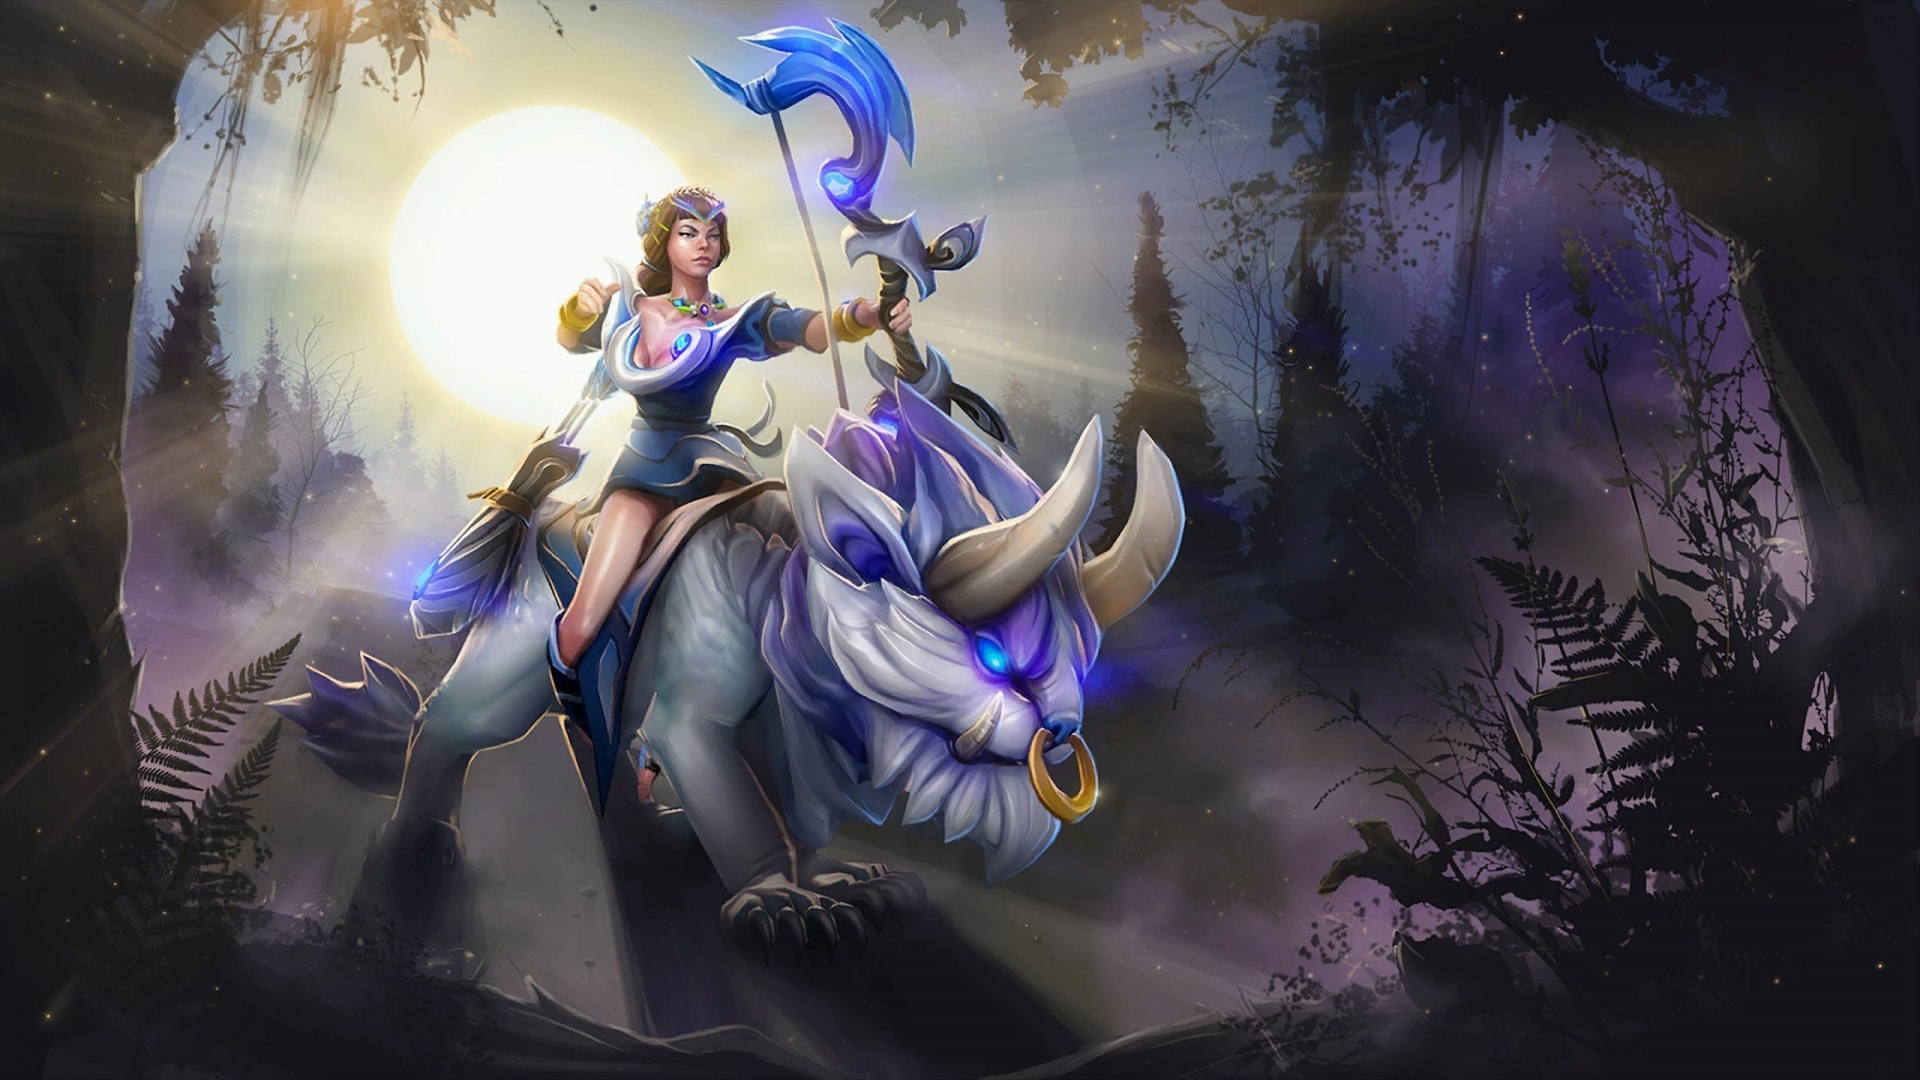 Dota2 Mirana Hd Wallpapers 7wallpapersnet